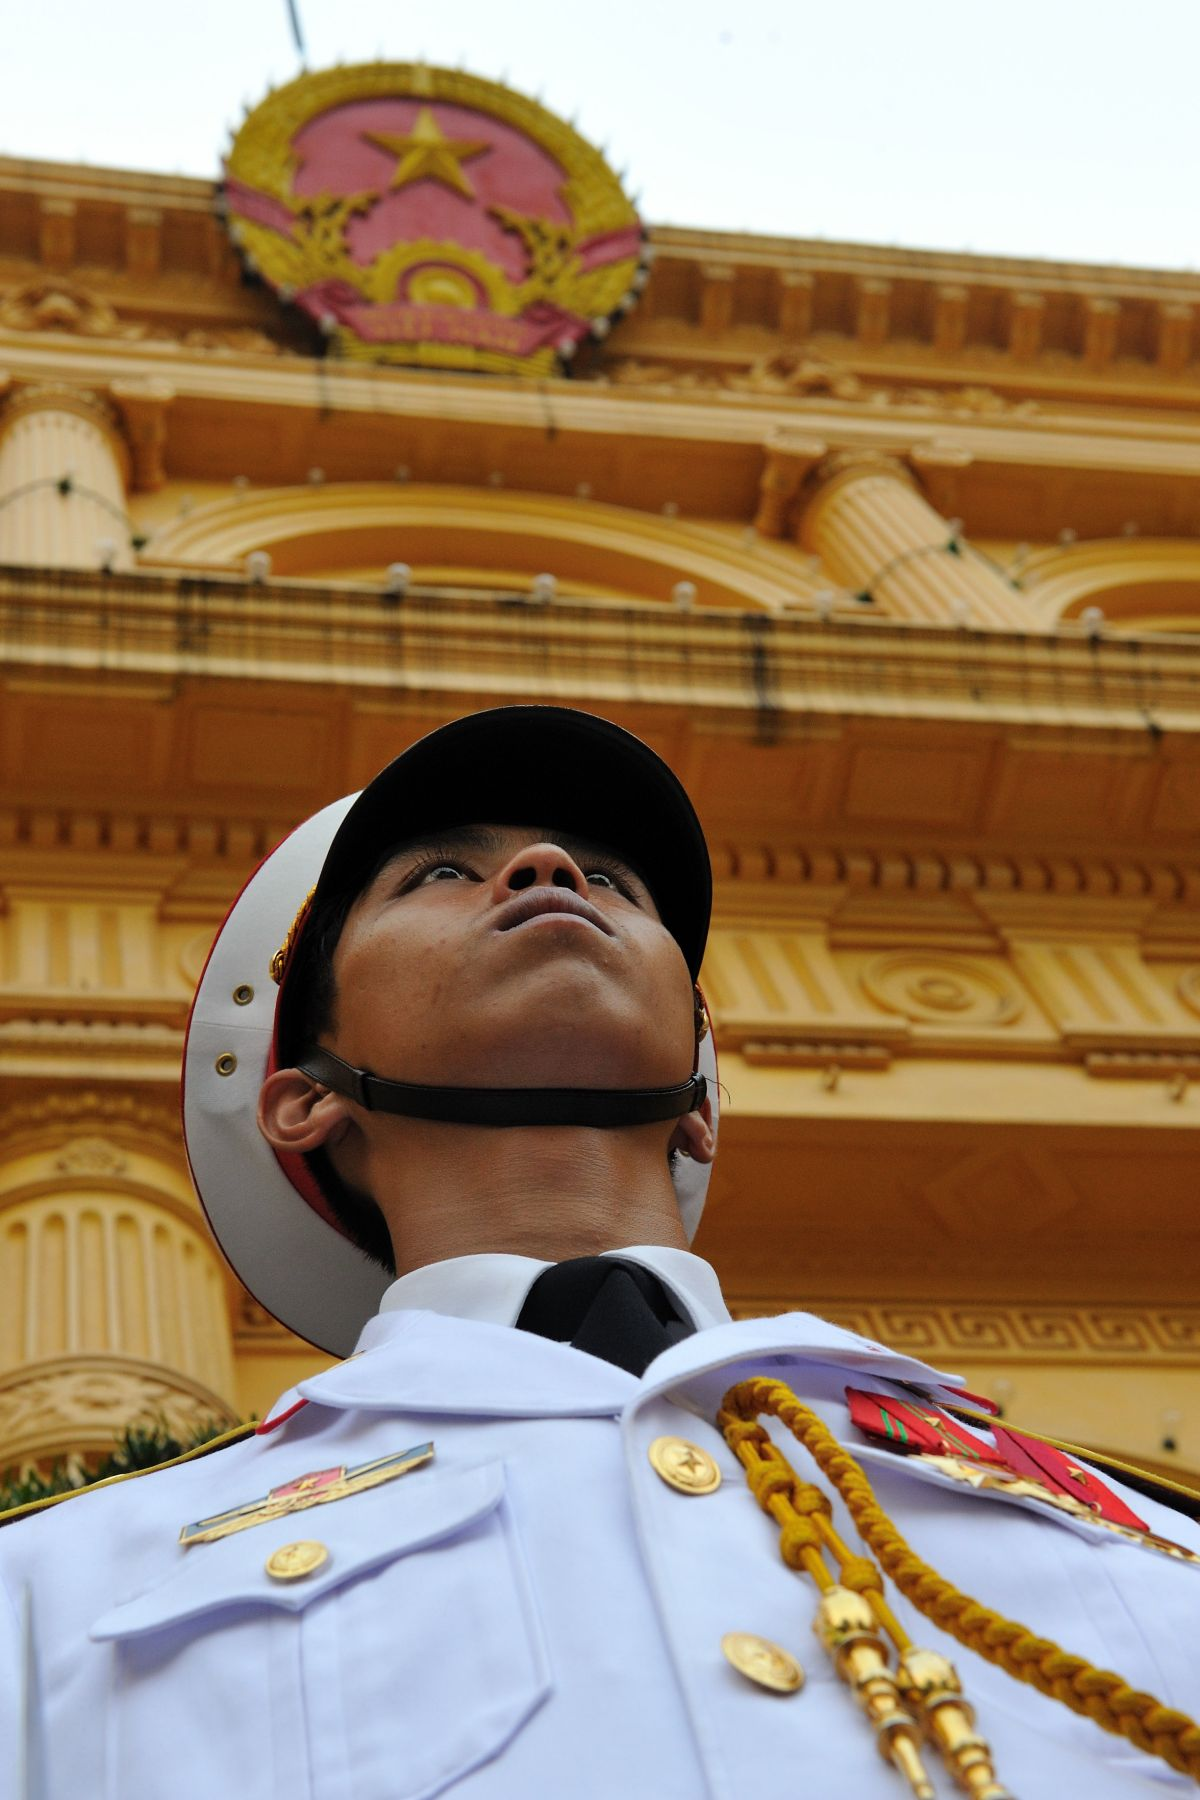 A sentinel stands guard before the Presidential Palace of Vietnam.